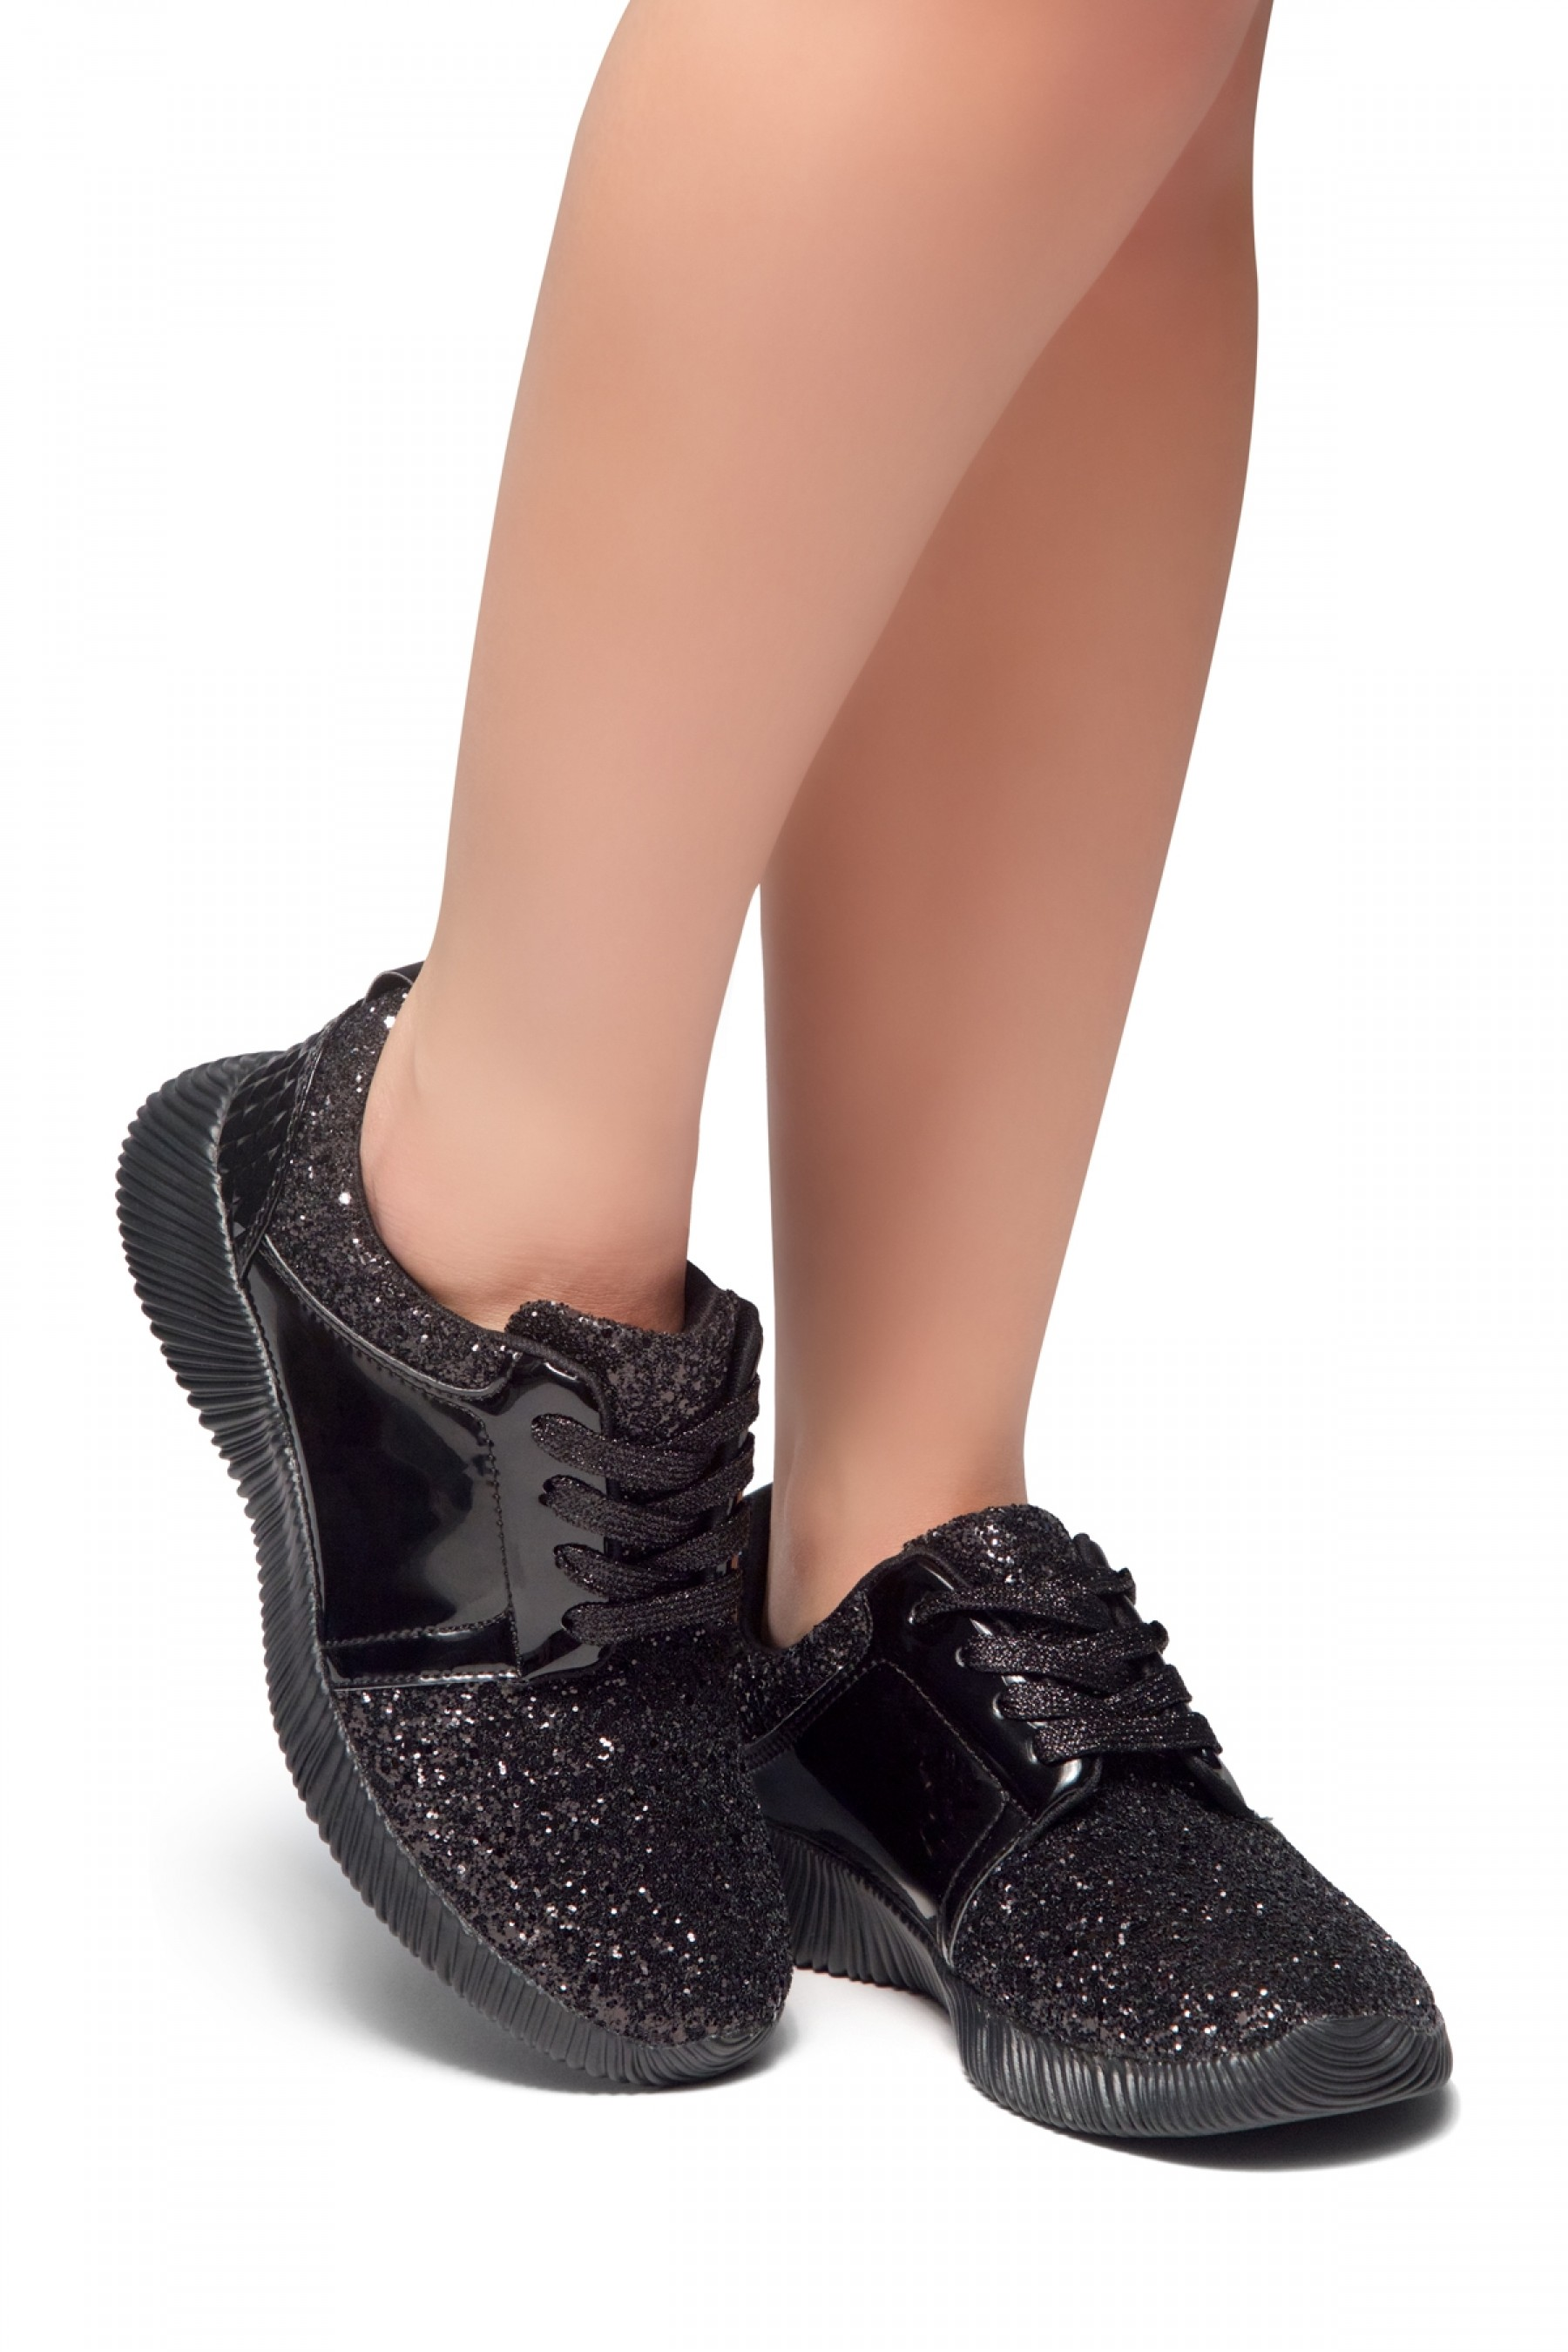 HerStyle MAGOR KICK-Glitter sneaker with lace upper (Black)